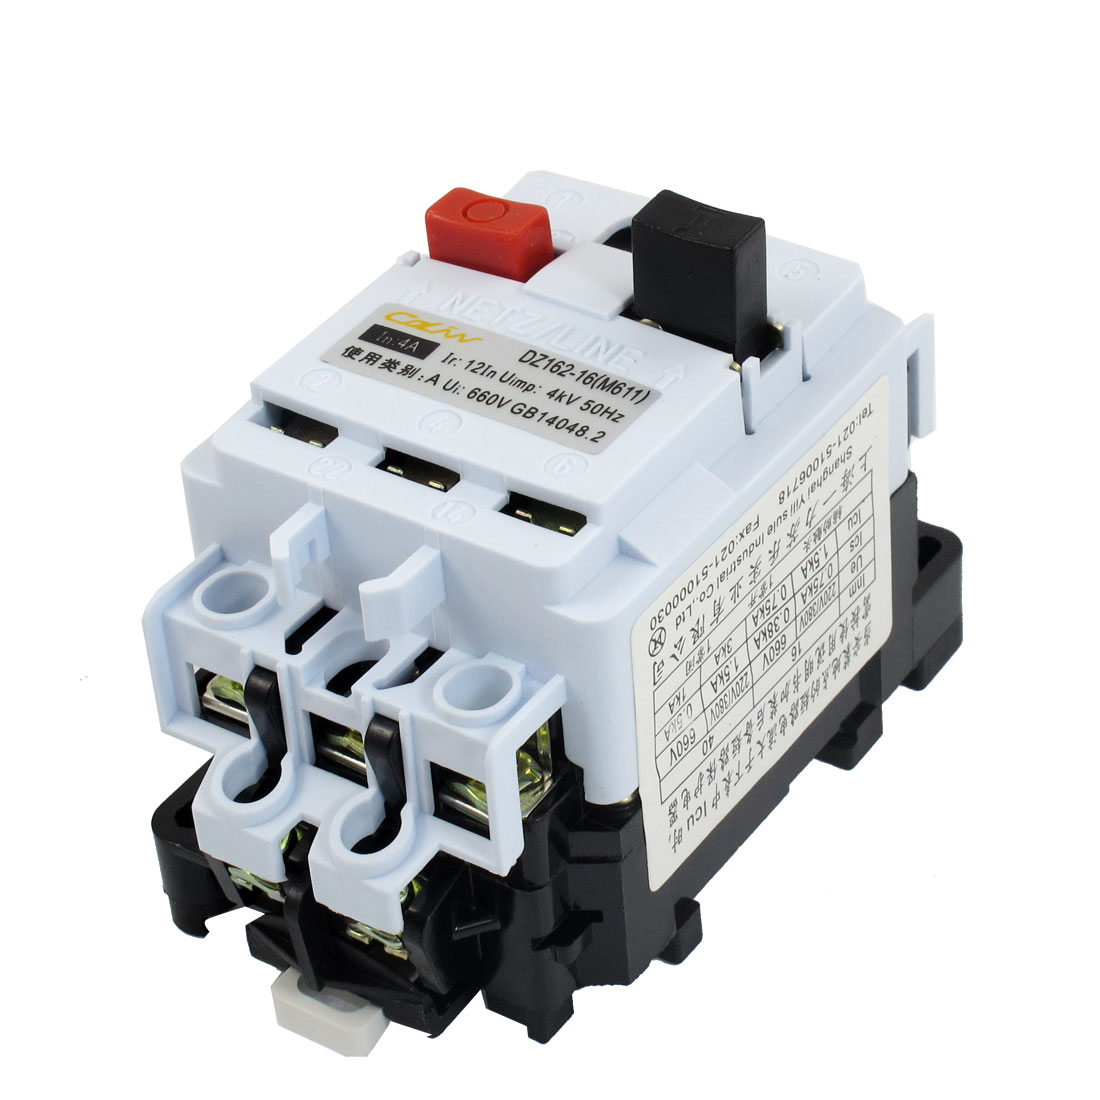 DZ162-16 AC 660V 4A 3P DIN Rail Mount Motor Protection Circuit Breaker